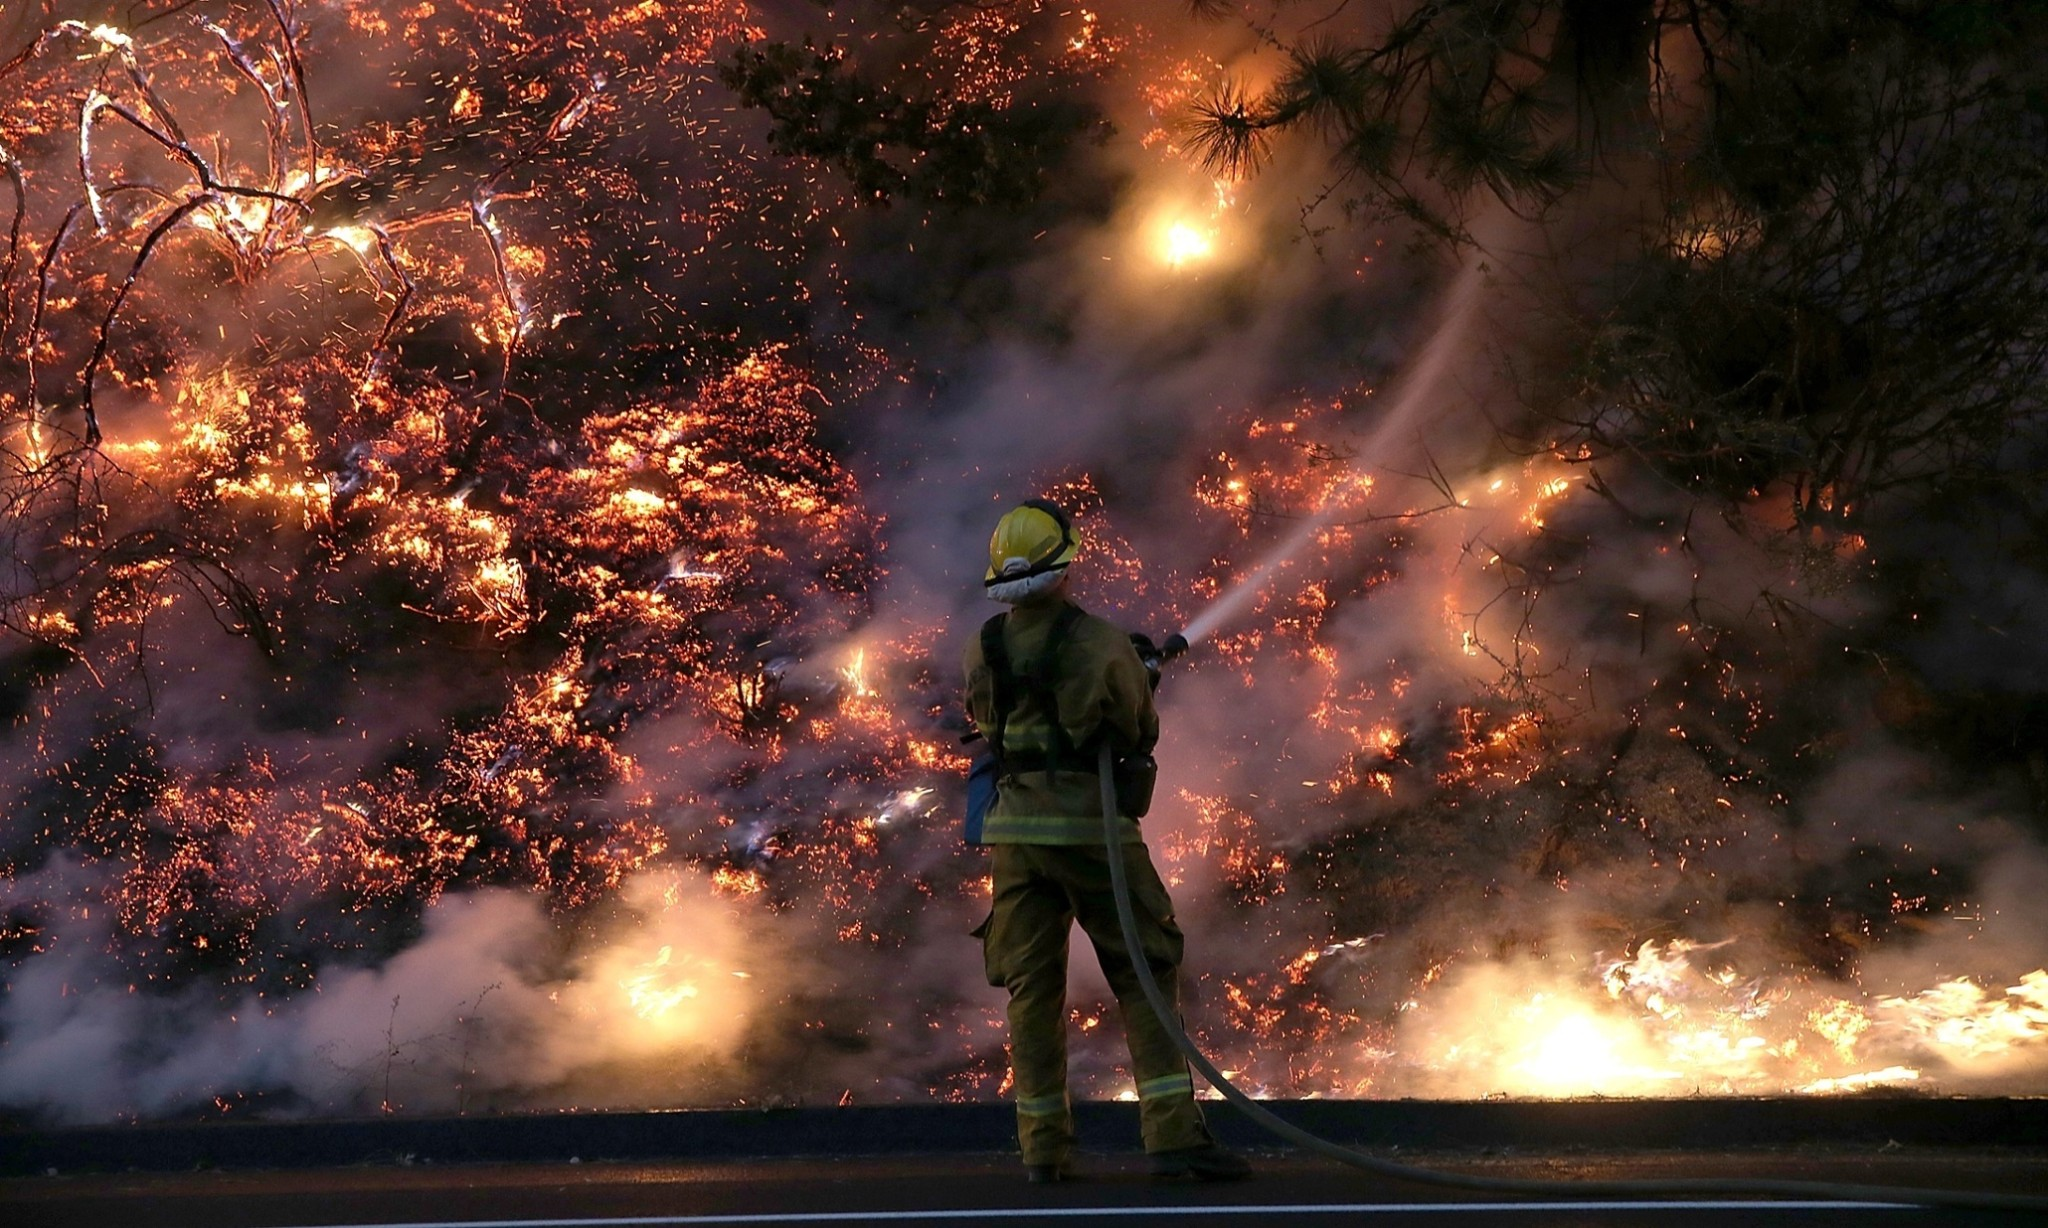 When firefighters speak out on climate change, we ought to listen up